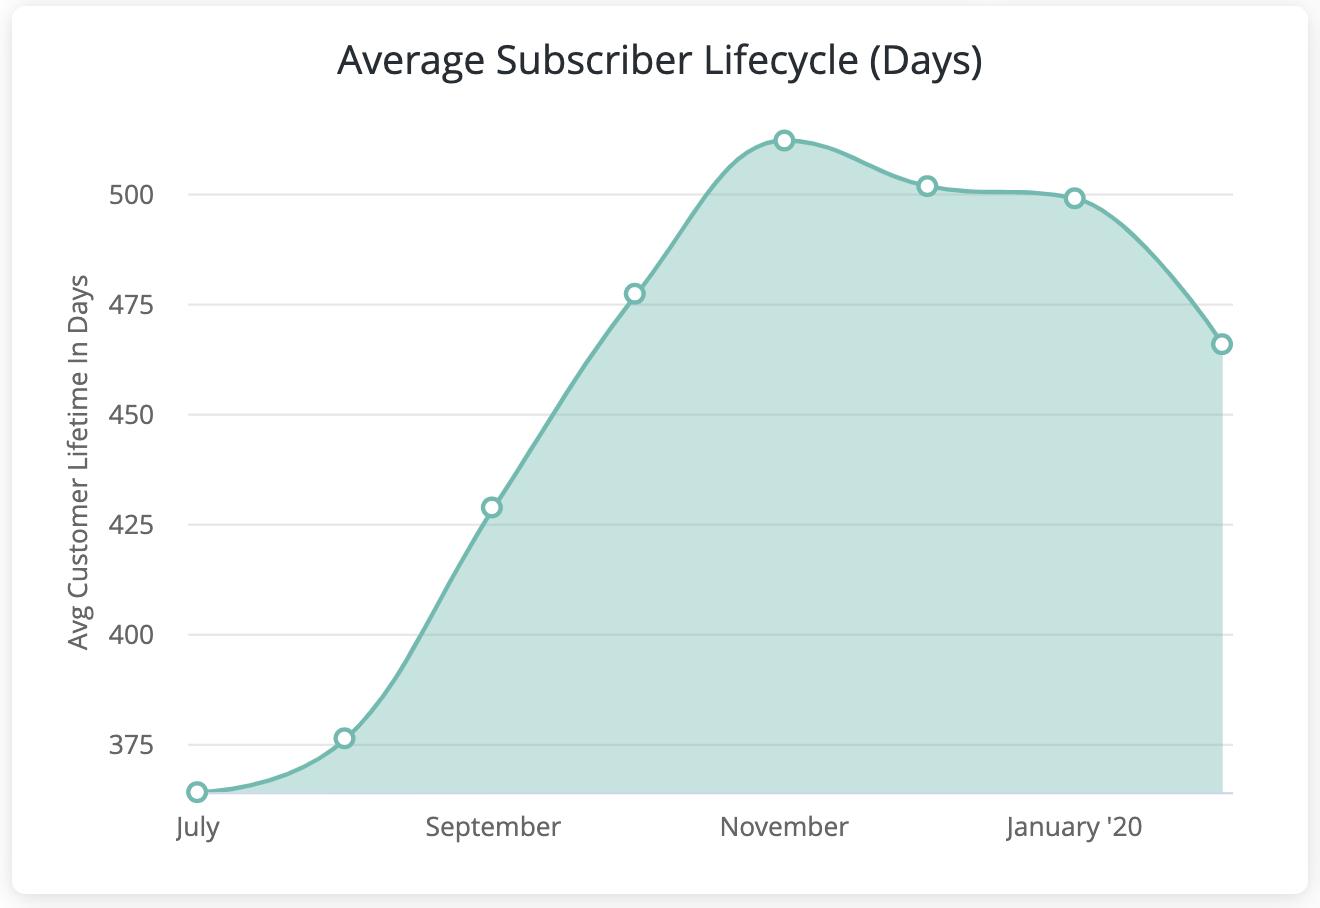 avg subscriber lifecycle